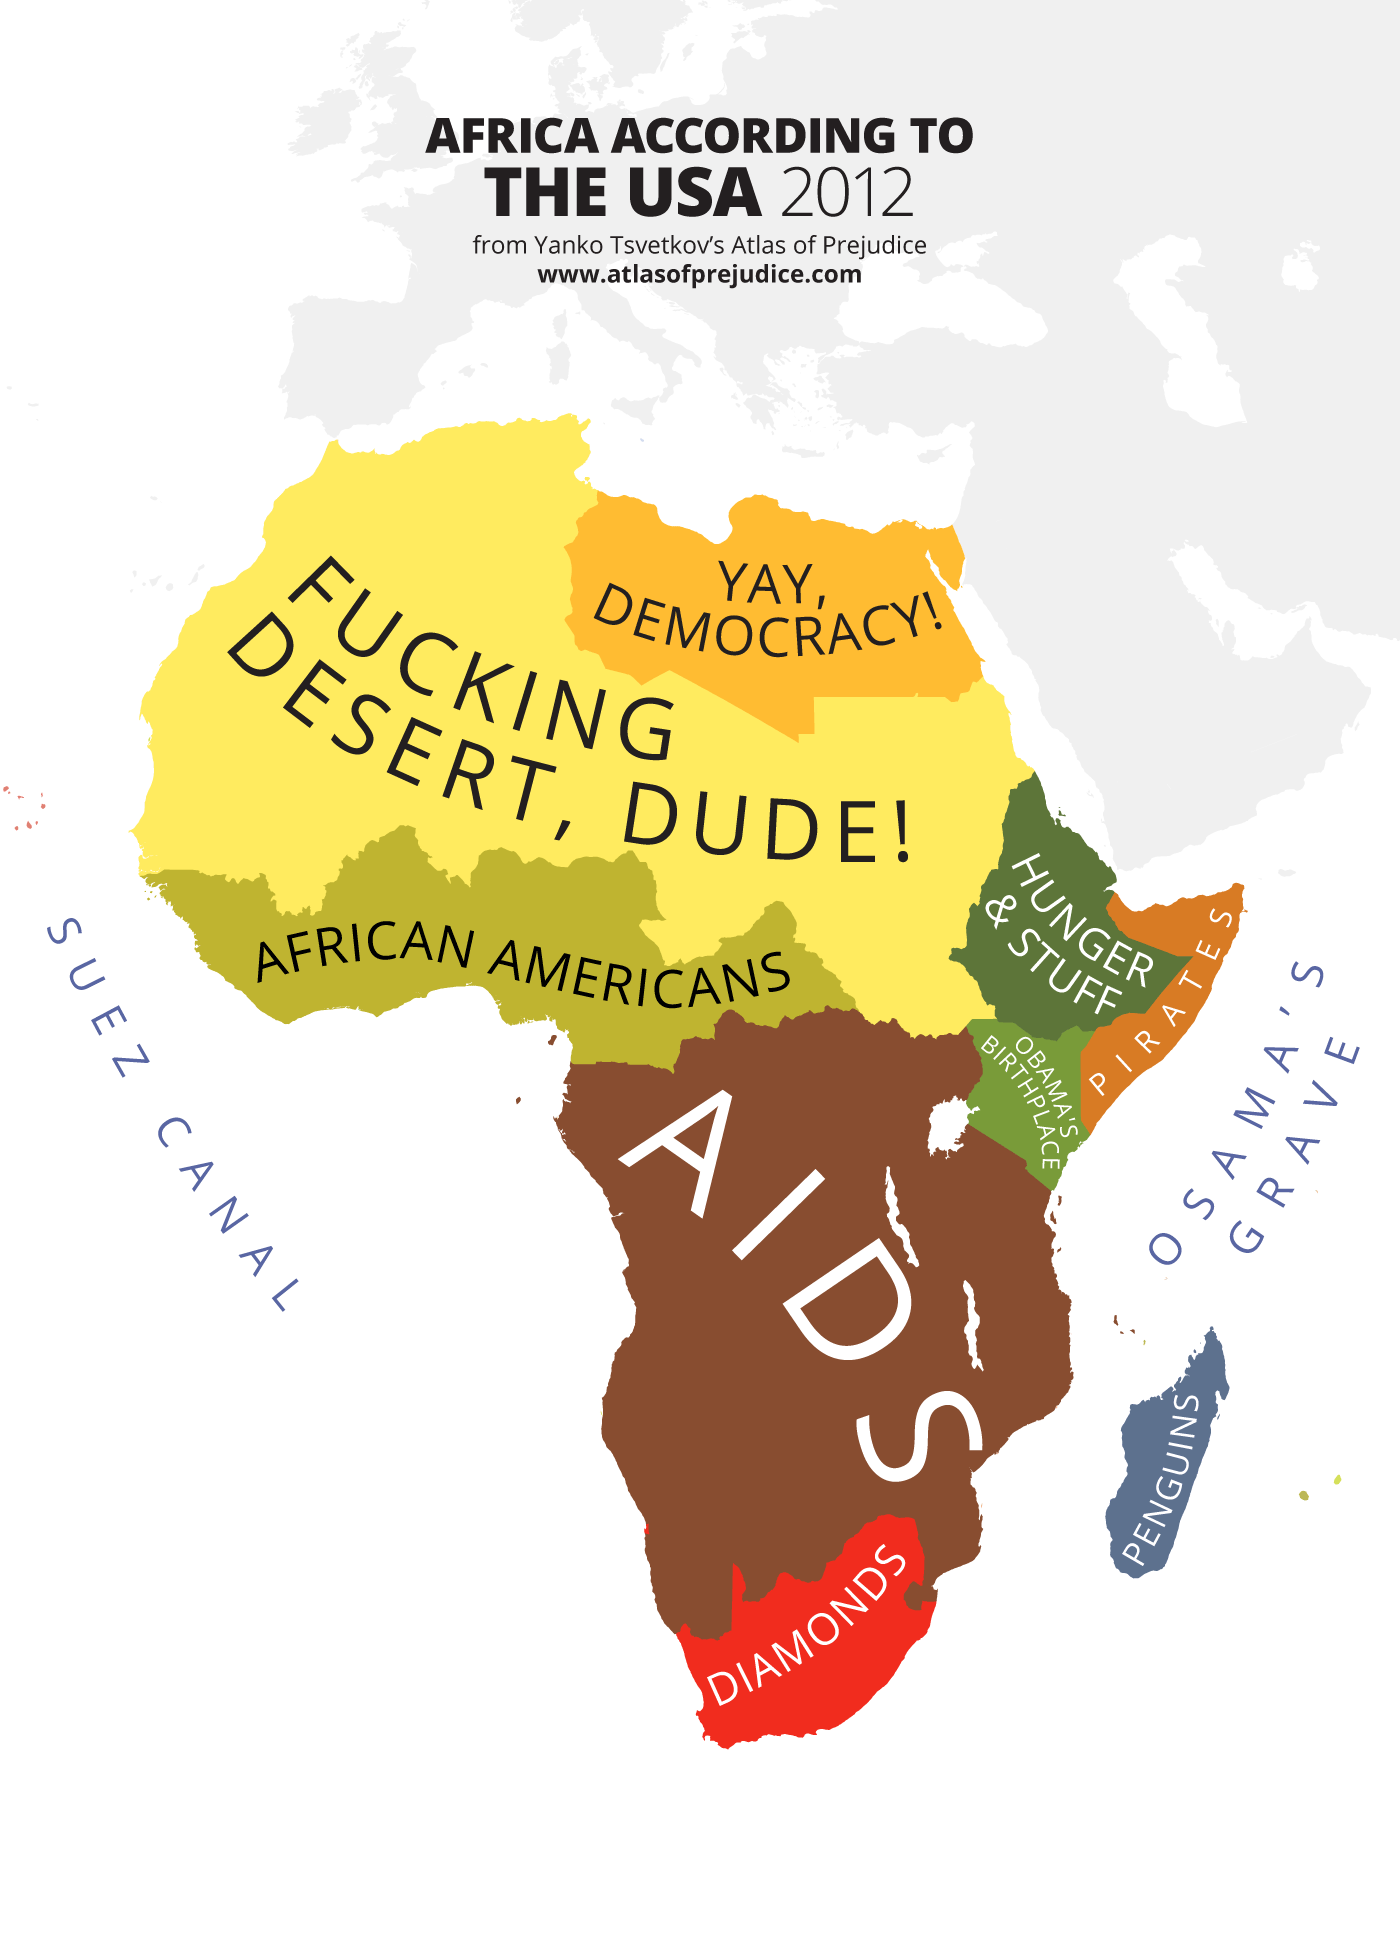 The american world atlas of prejudice africa according to the usa 2012 atlas of prejudice gumiabroncs Image collections